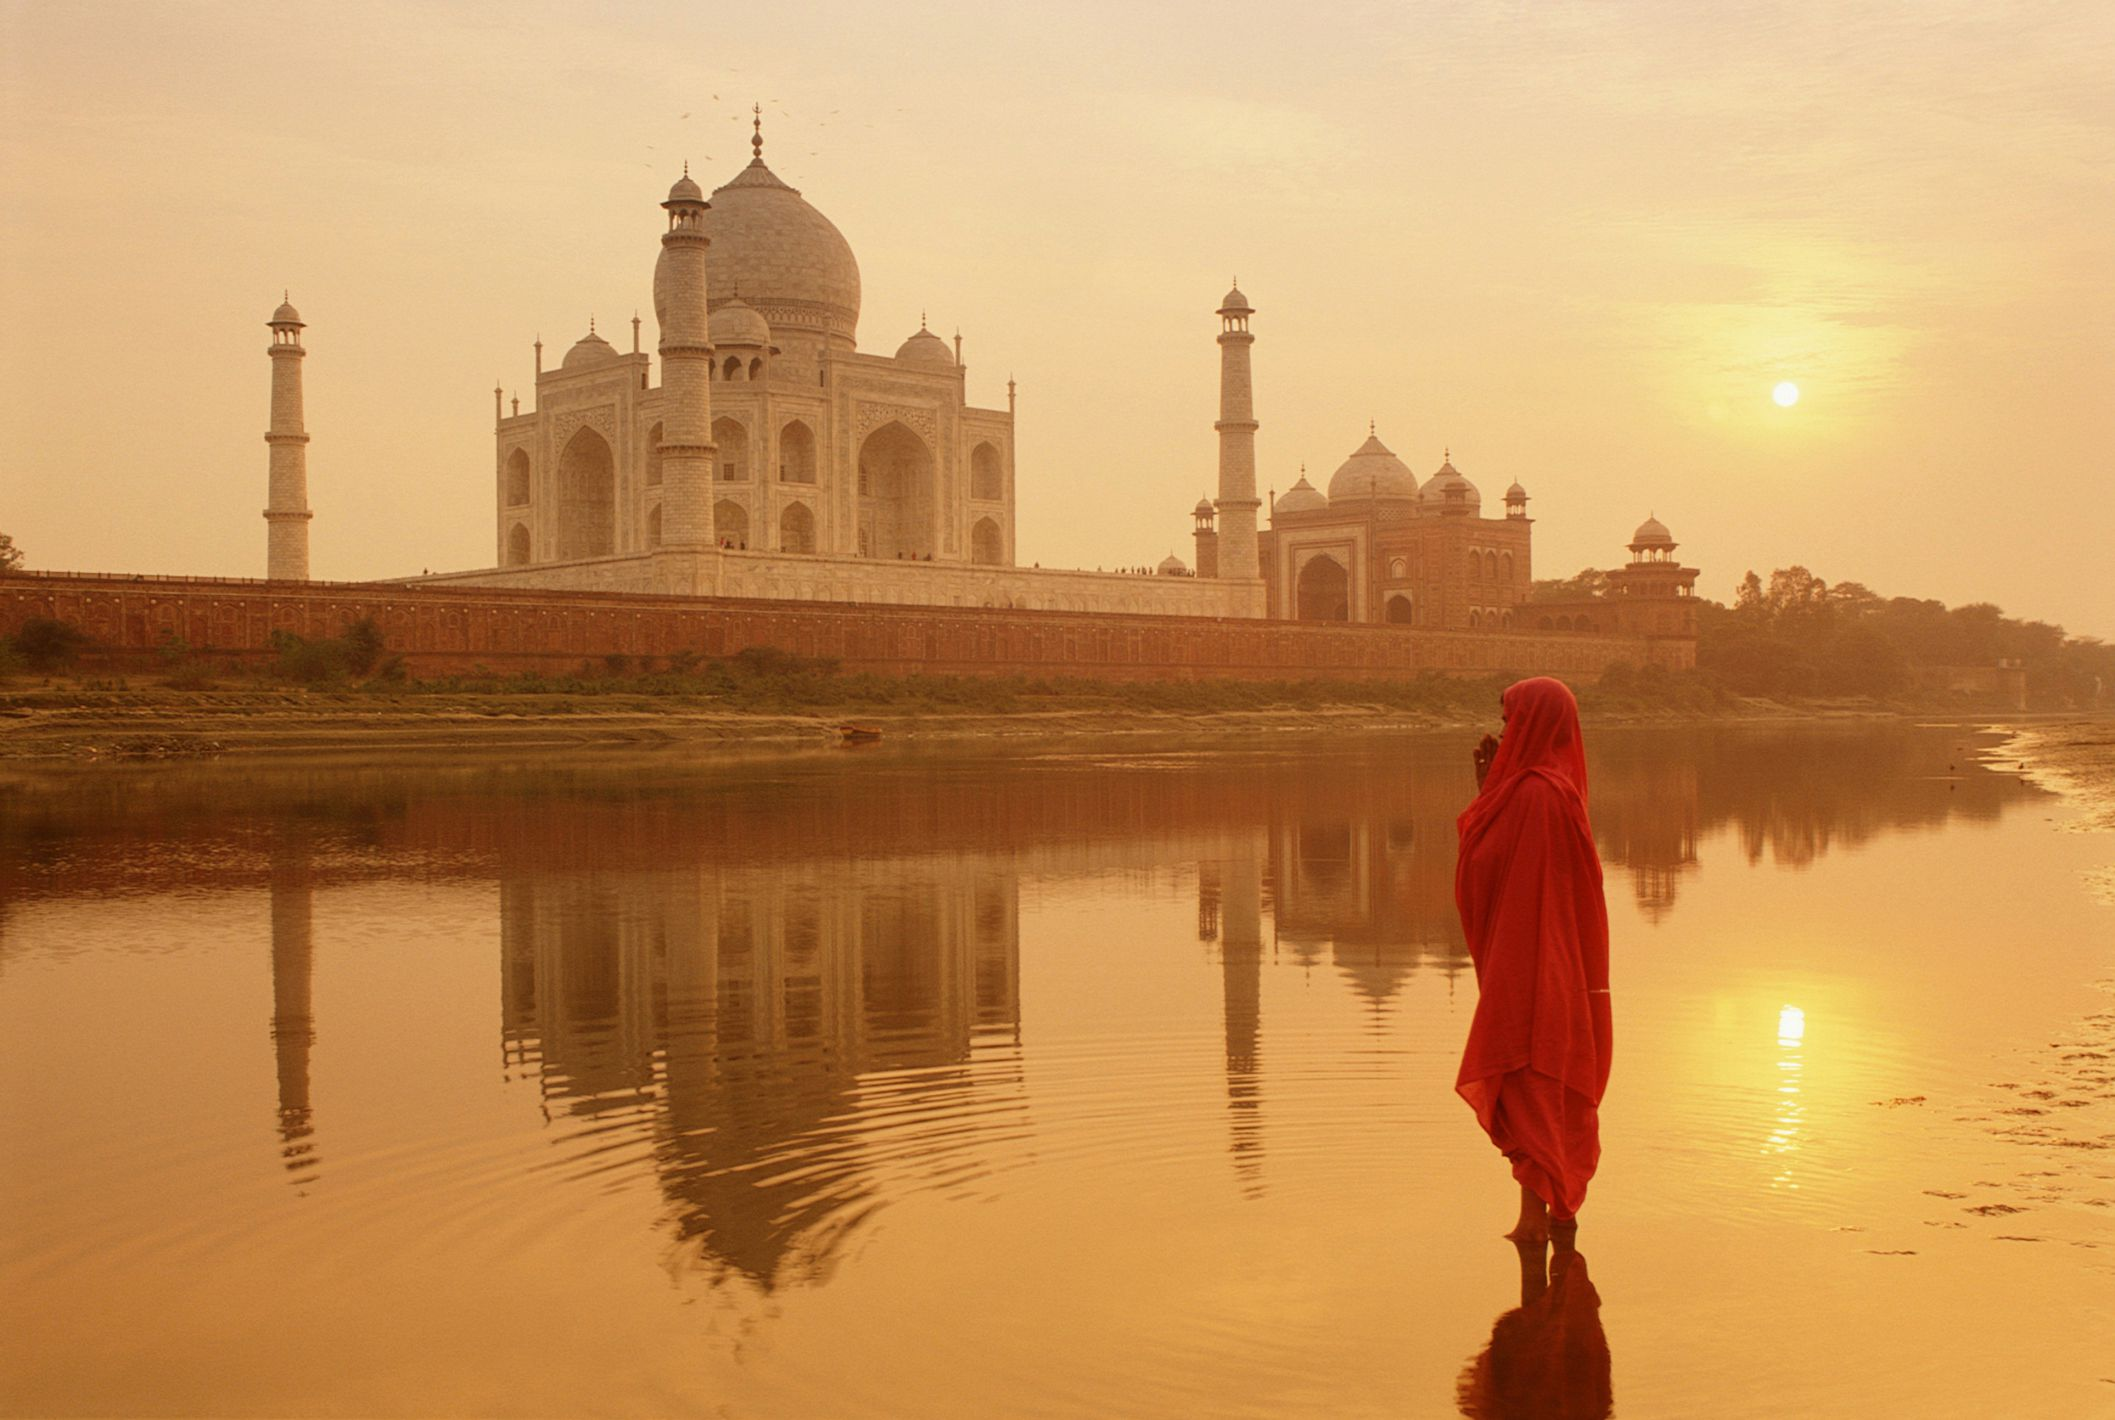 Taj Mahal Hd Wallpaper For Laptop The Taj Mahal In India What To Know Before You Go